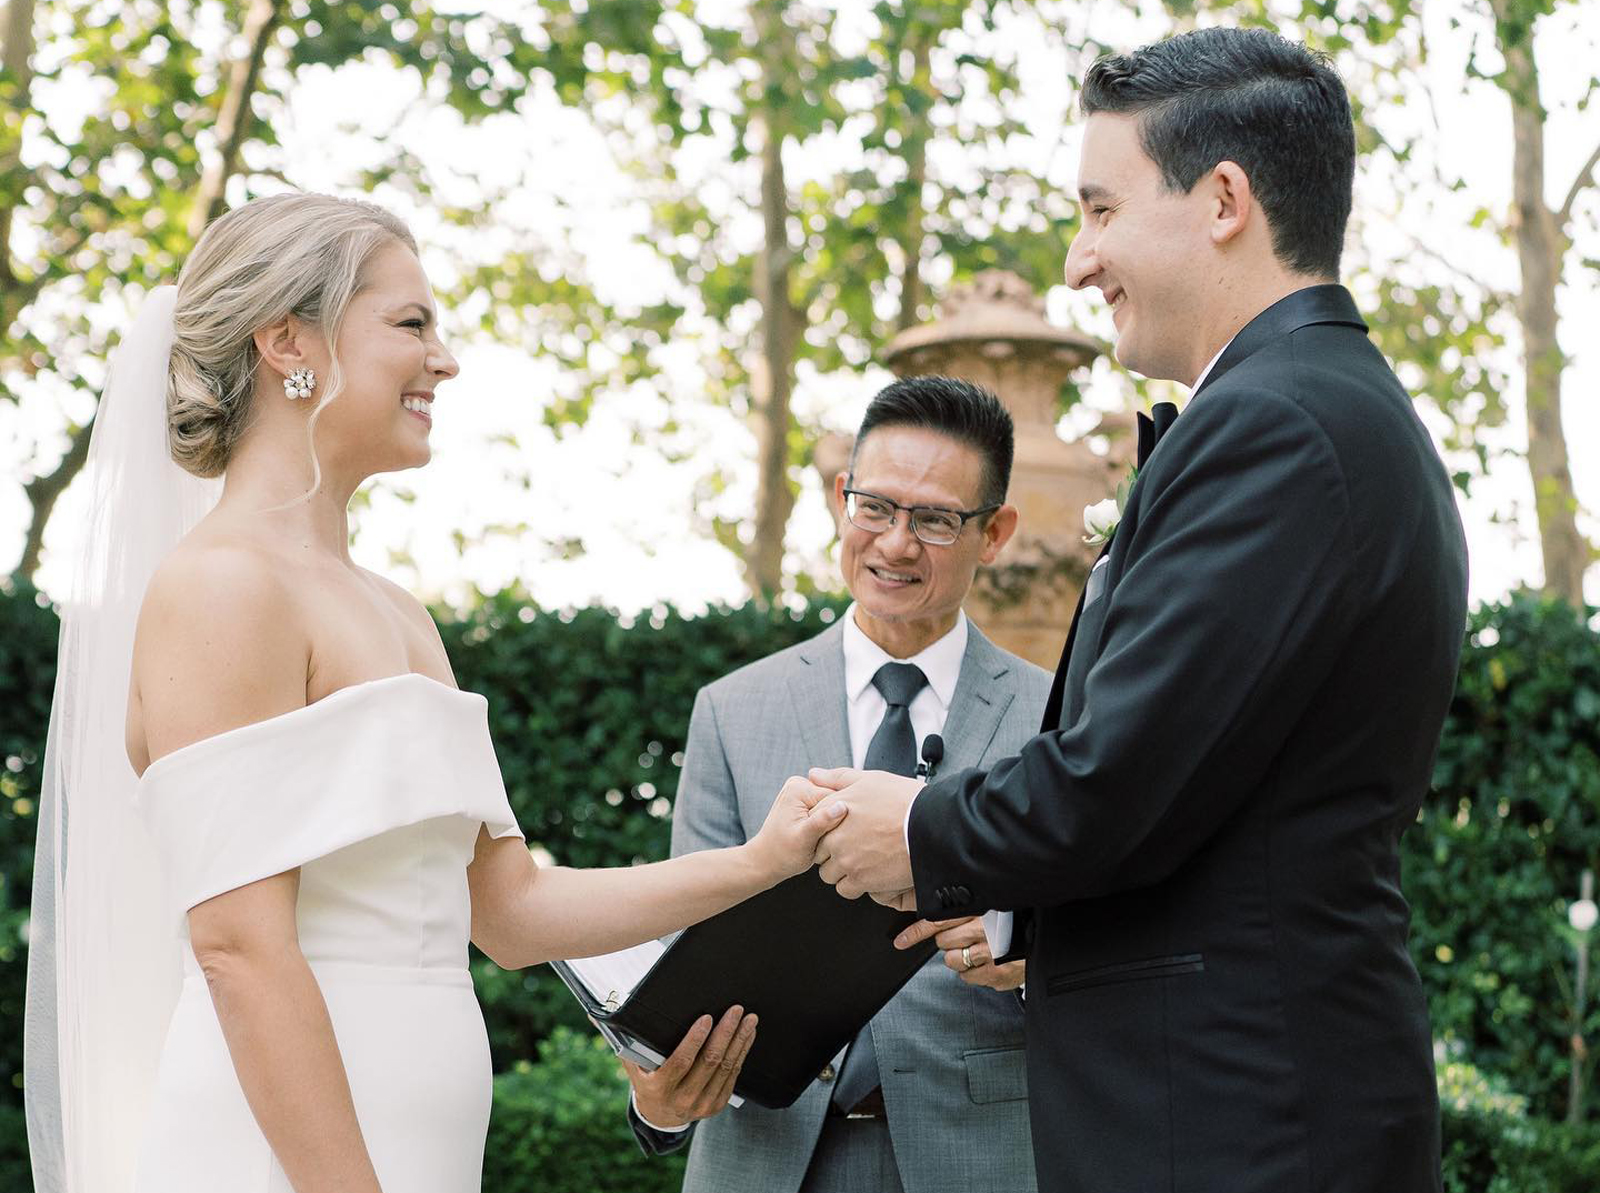 Tan Weddings Events-Musicians Officiants-Expert Advice-Real Weddings Magazine